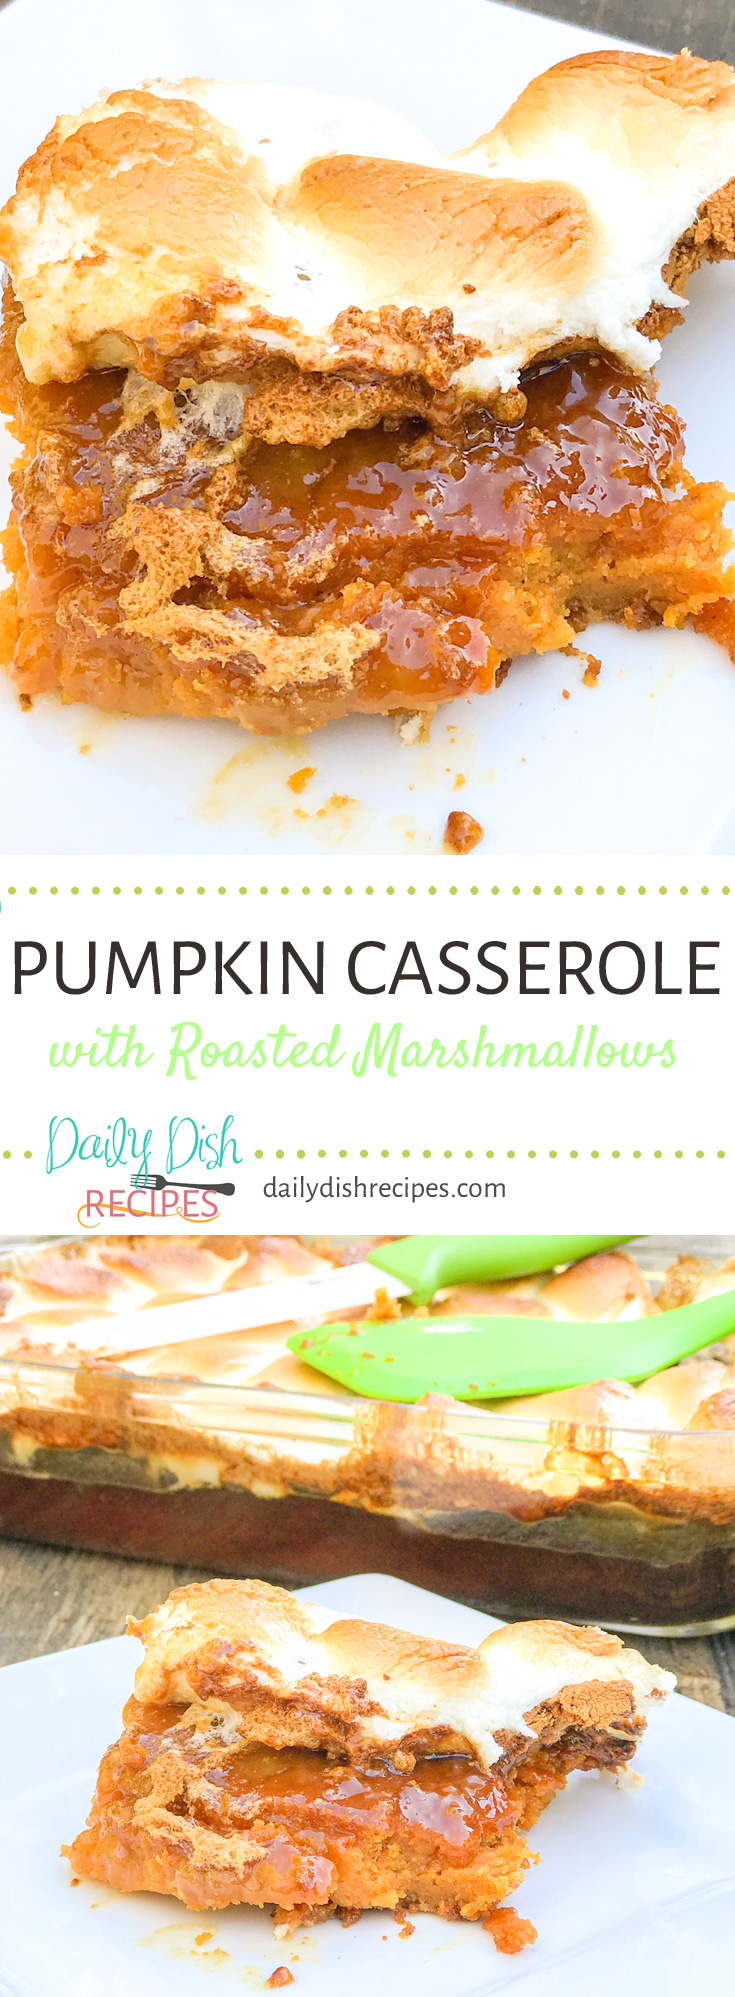 Pumpkin Casserole with Roasted Marshmallows